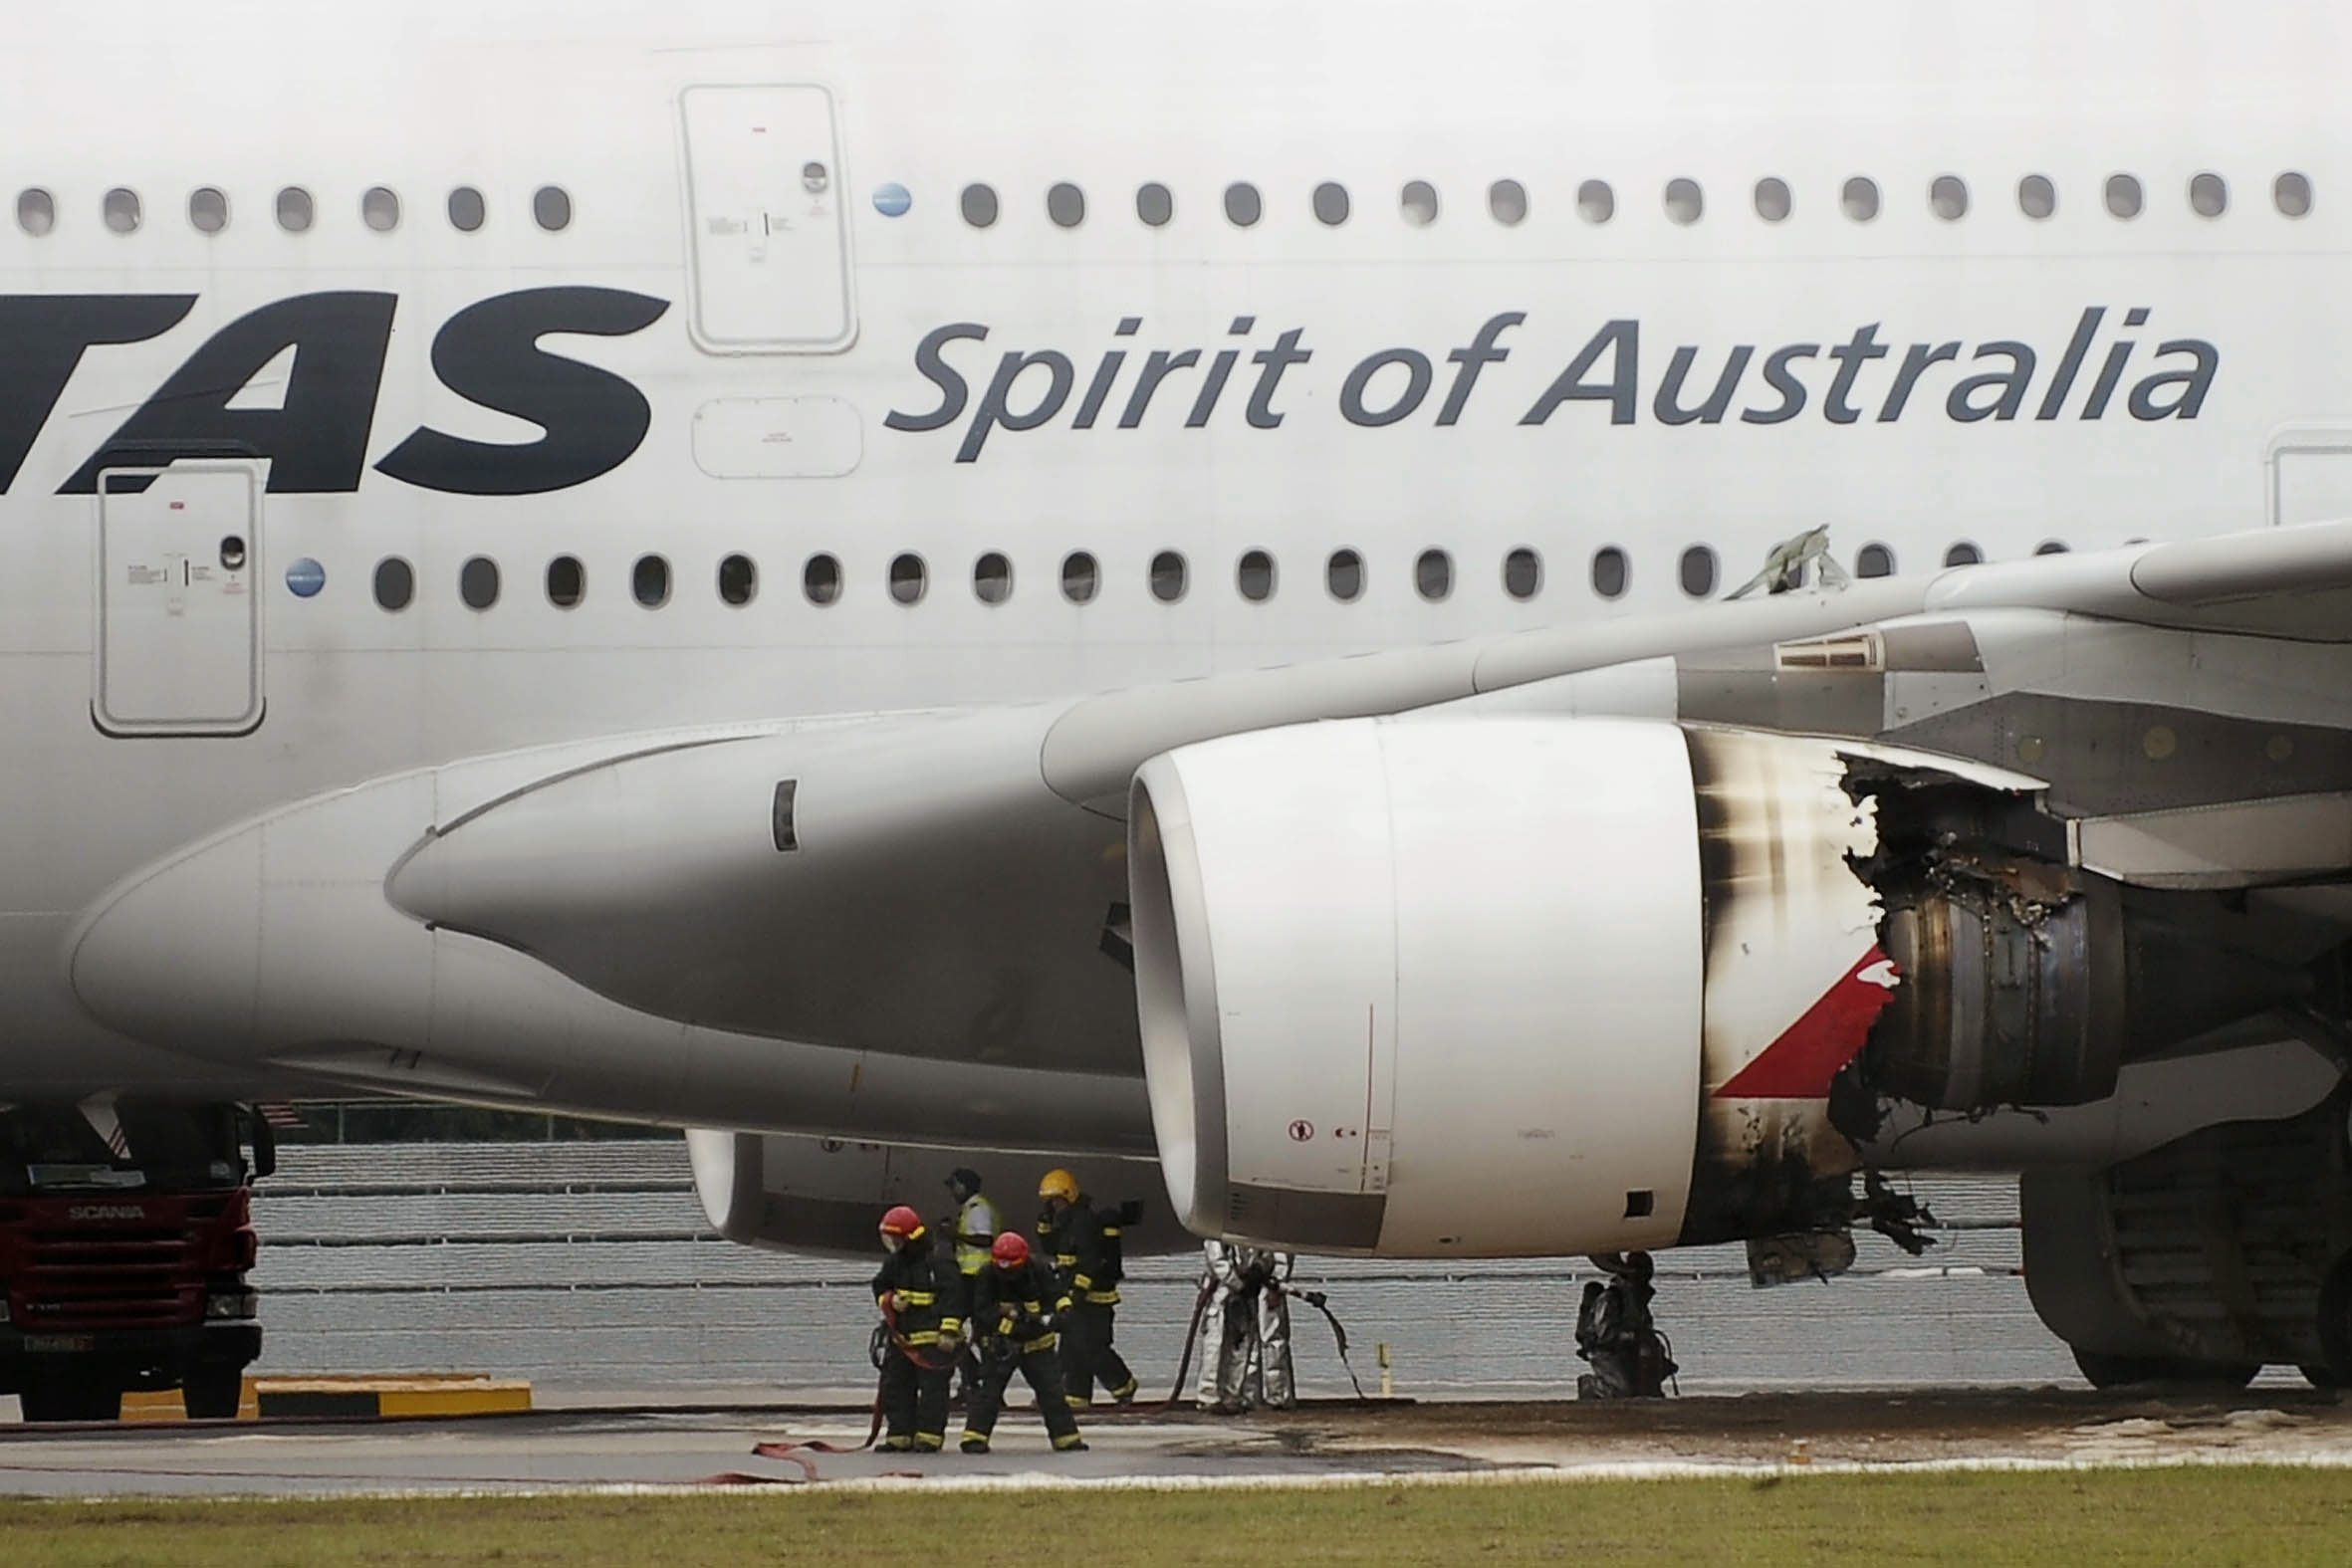 The damaged engine of QF32